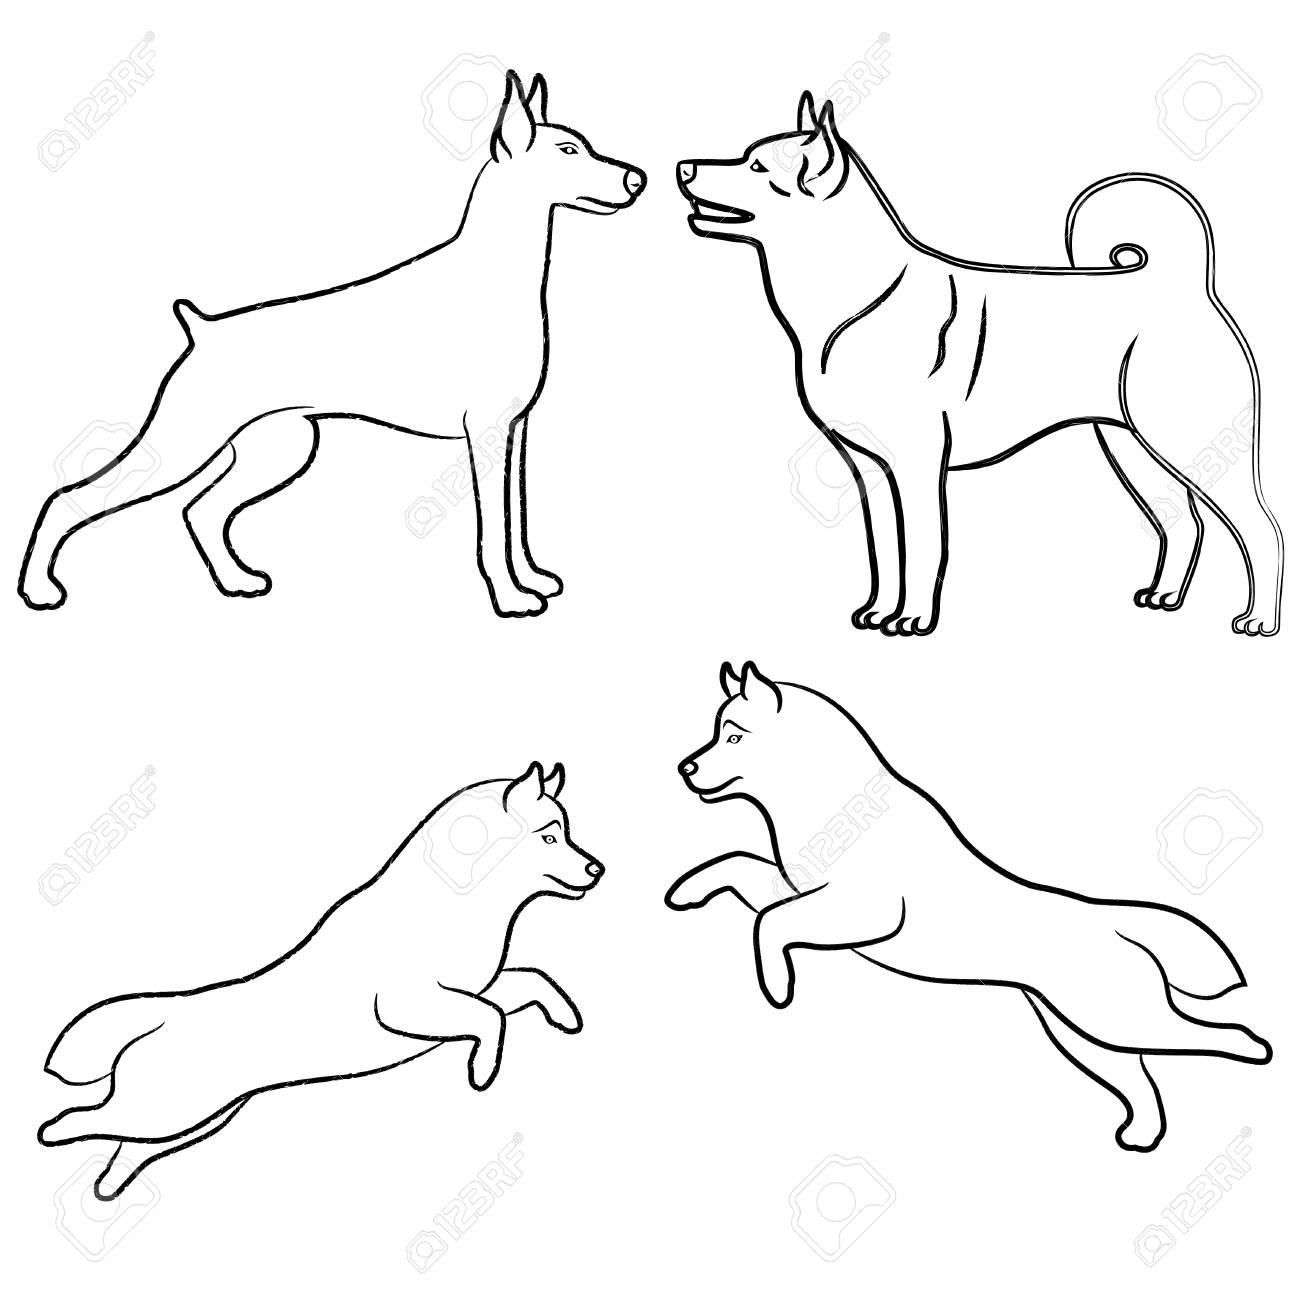 1300x1300 Set Of Four Standing And Jumping Dogs, Vector Outlines Royalty